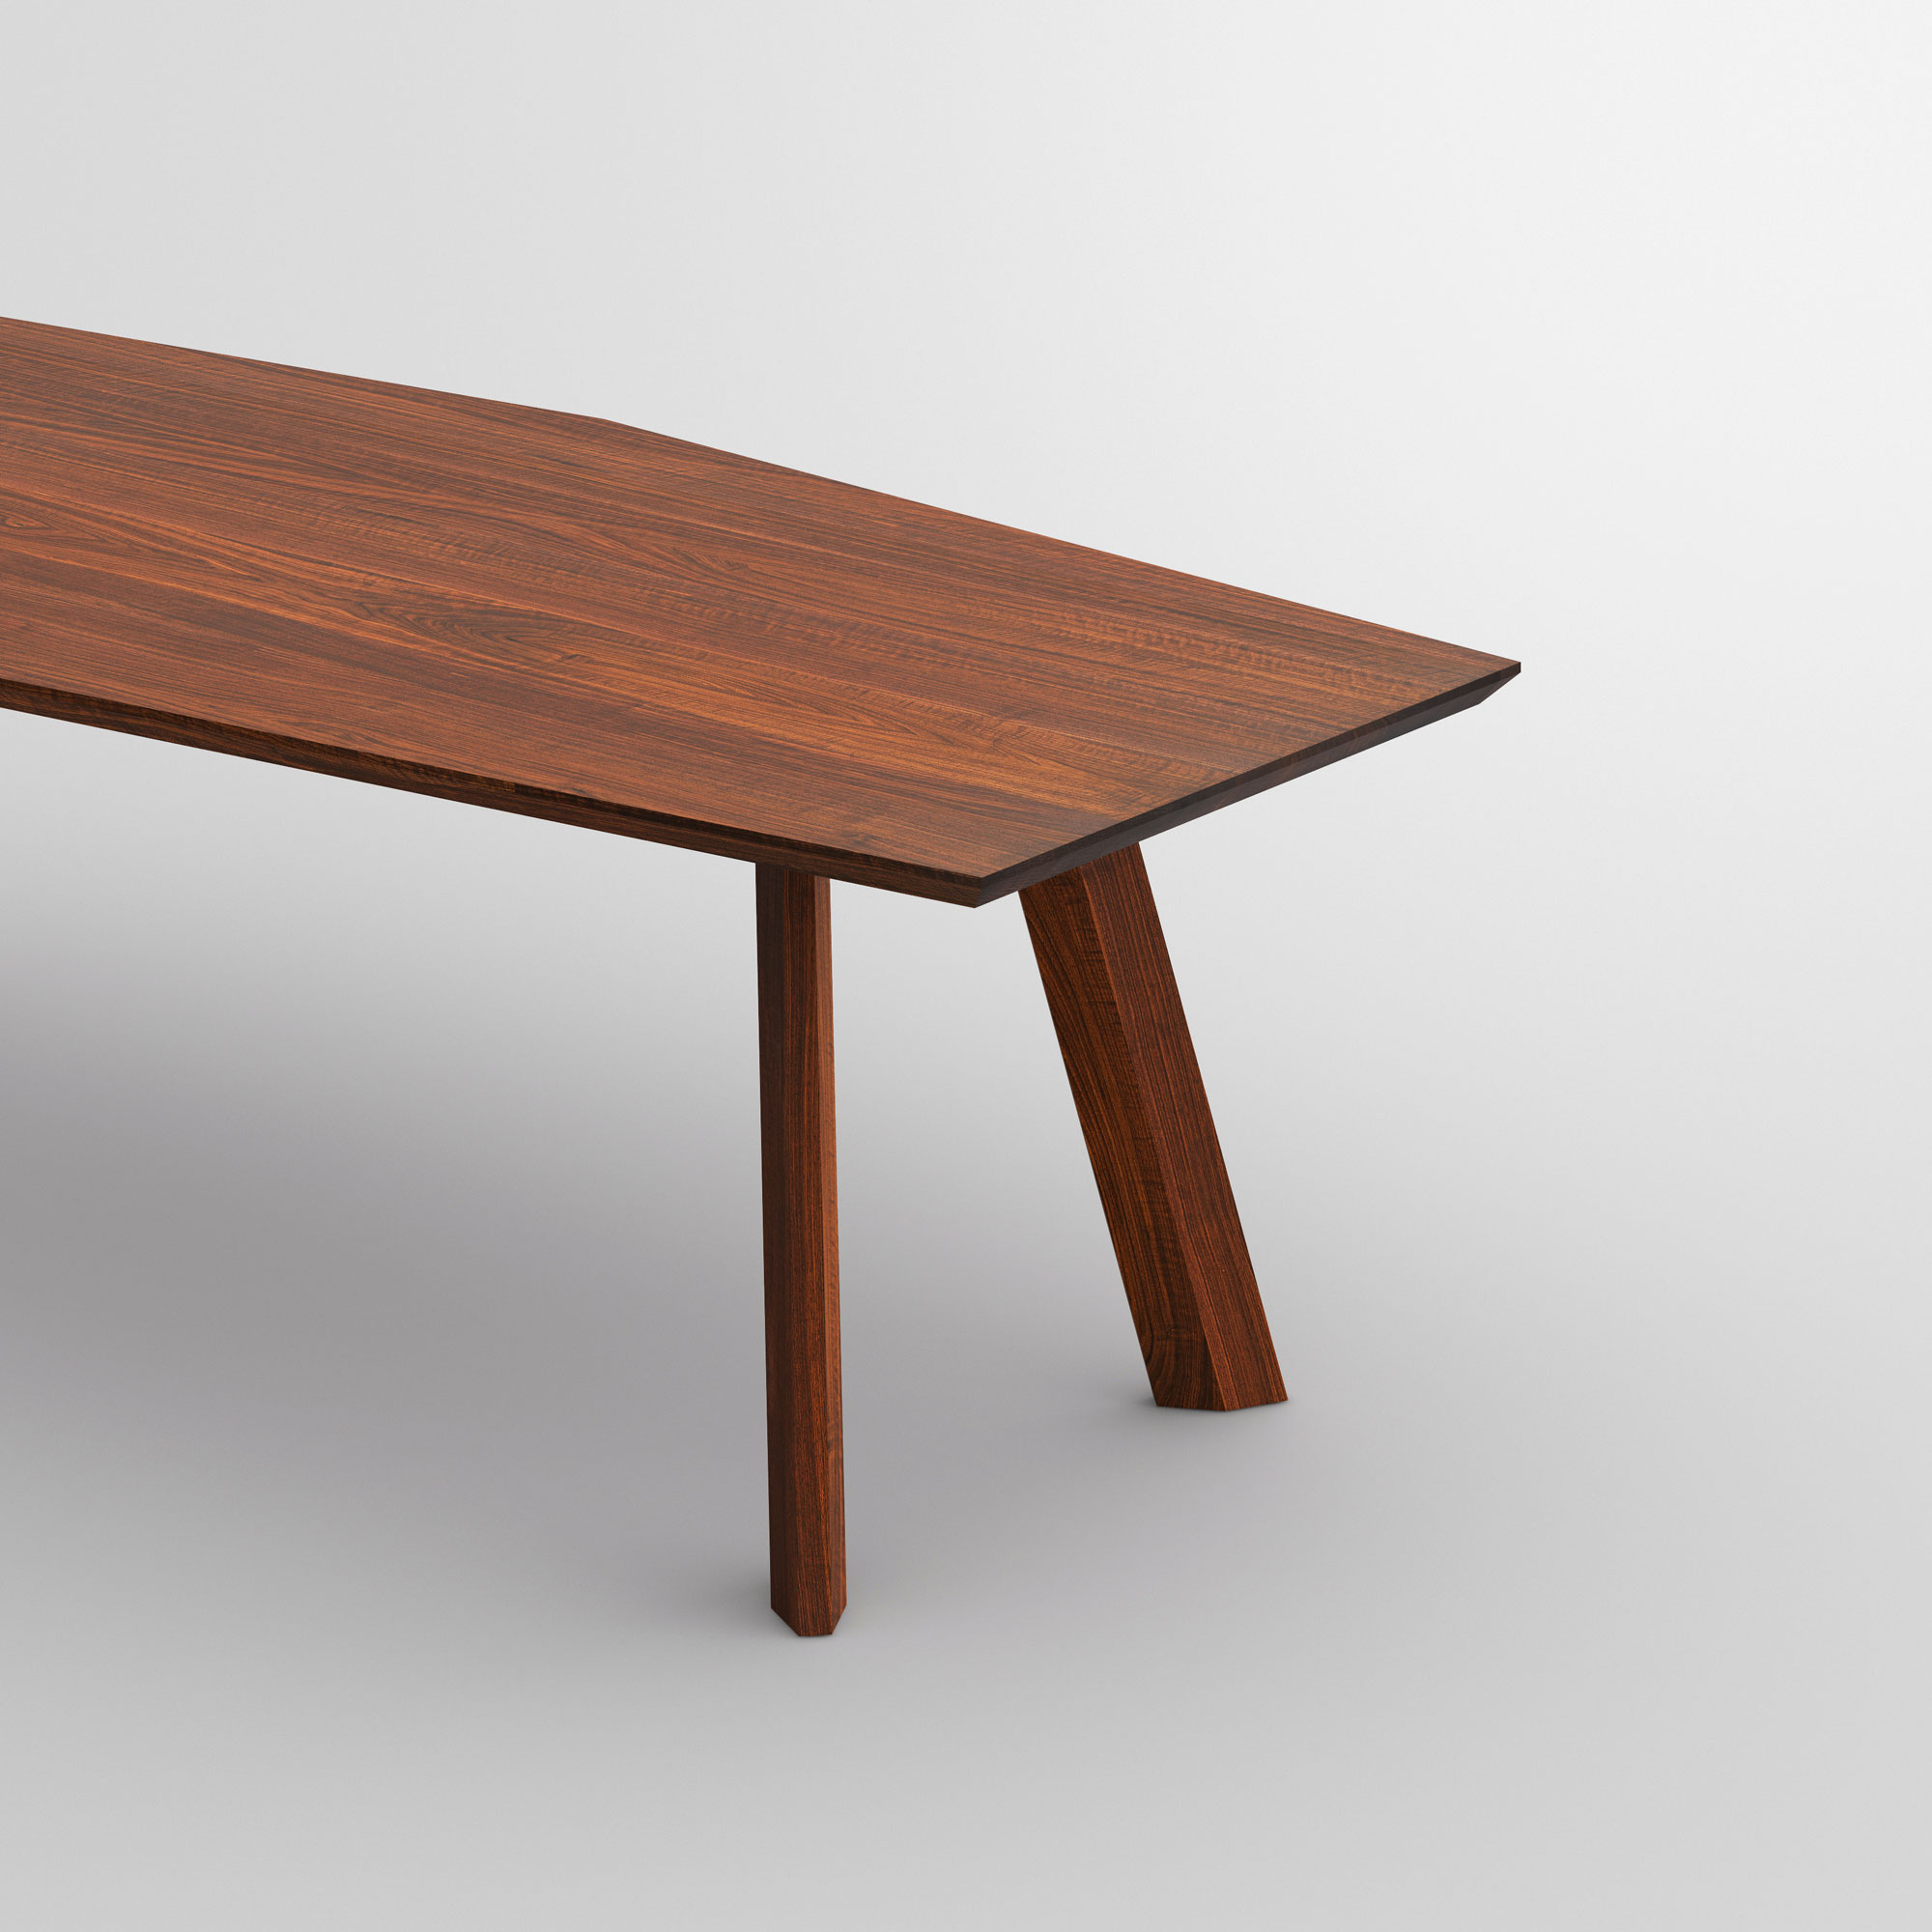 Designer Dining Table RHOMBI cam2 custom made in solid wood by vitamin design